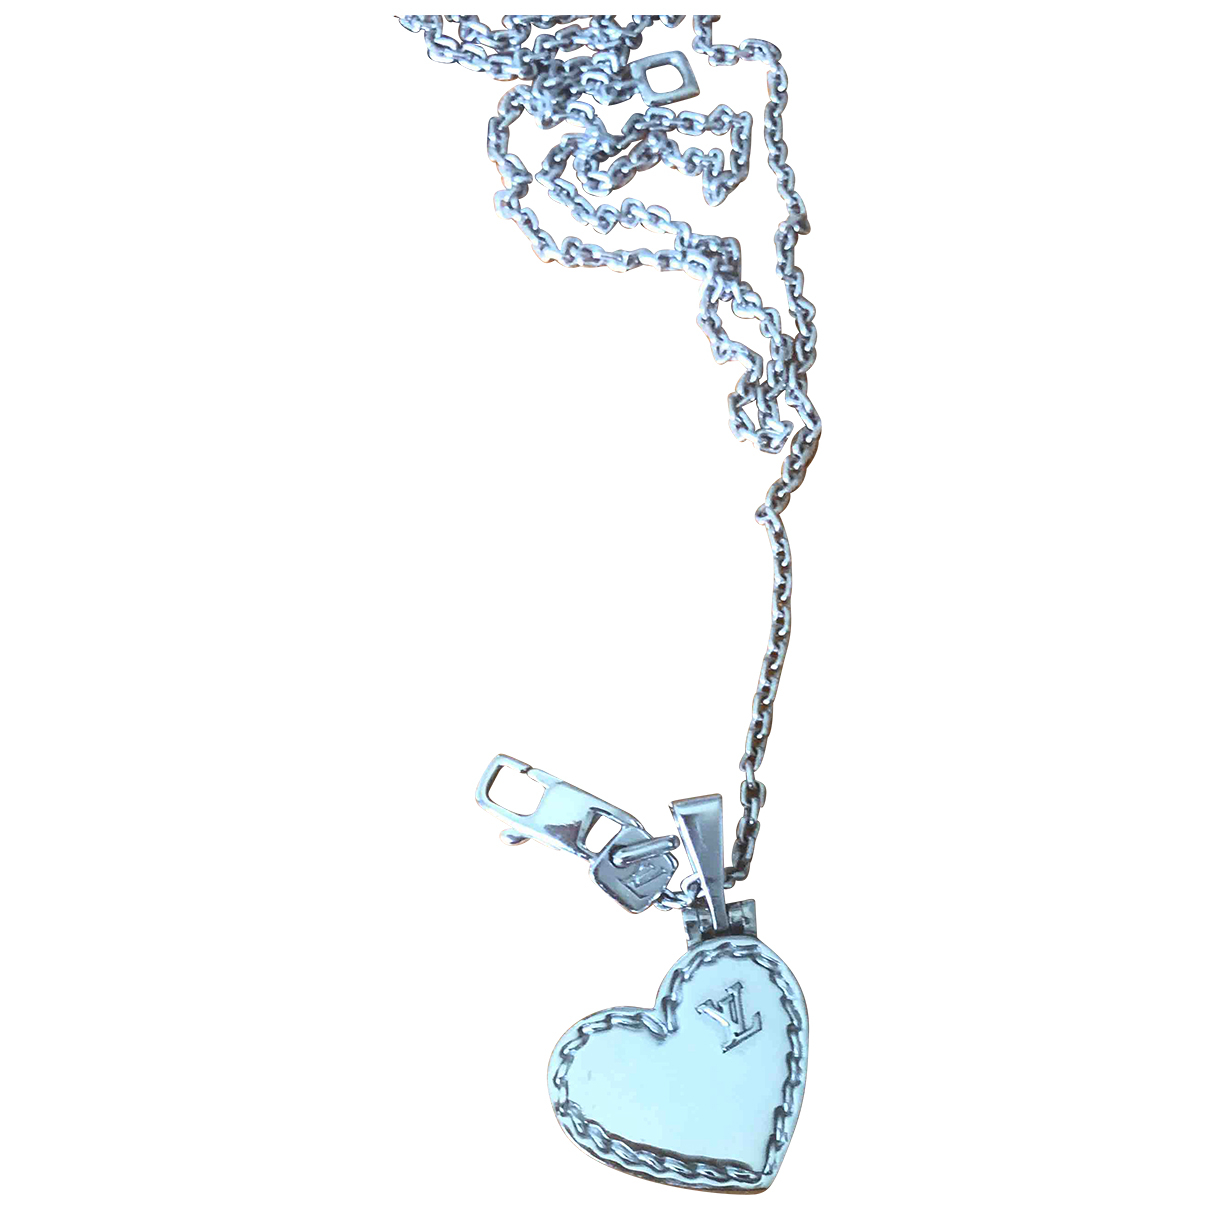 Louis Vuitton \N Silver White gold necklace for Women \N